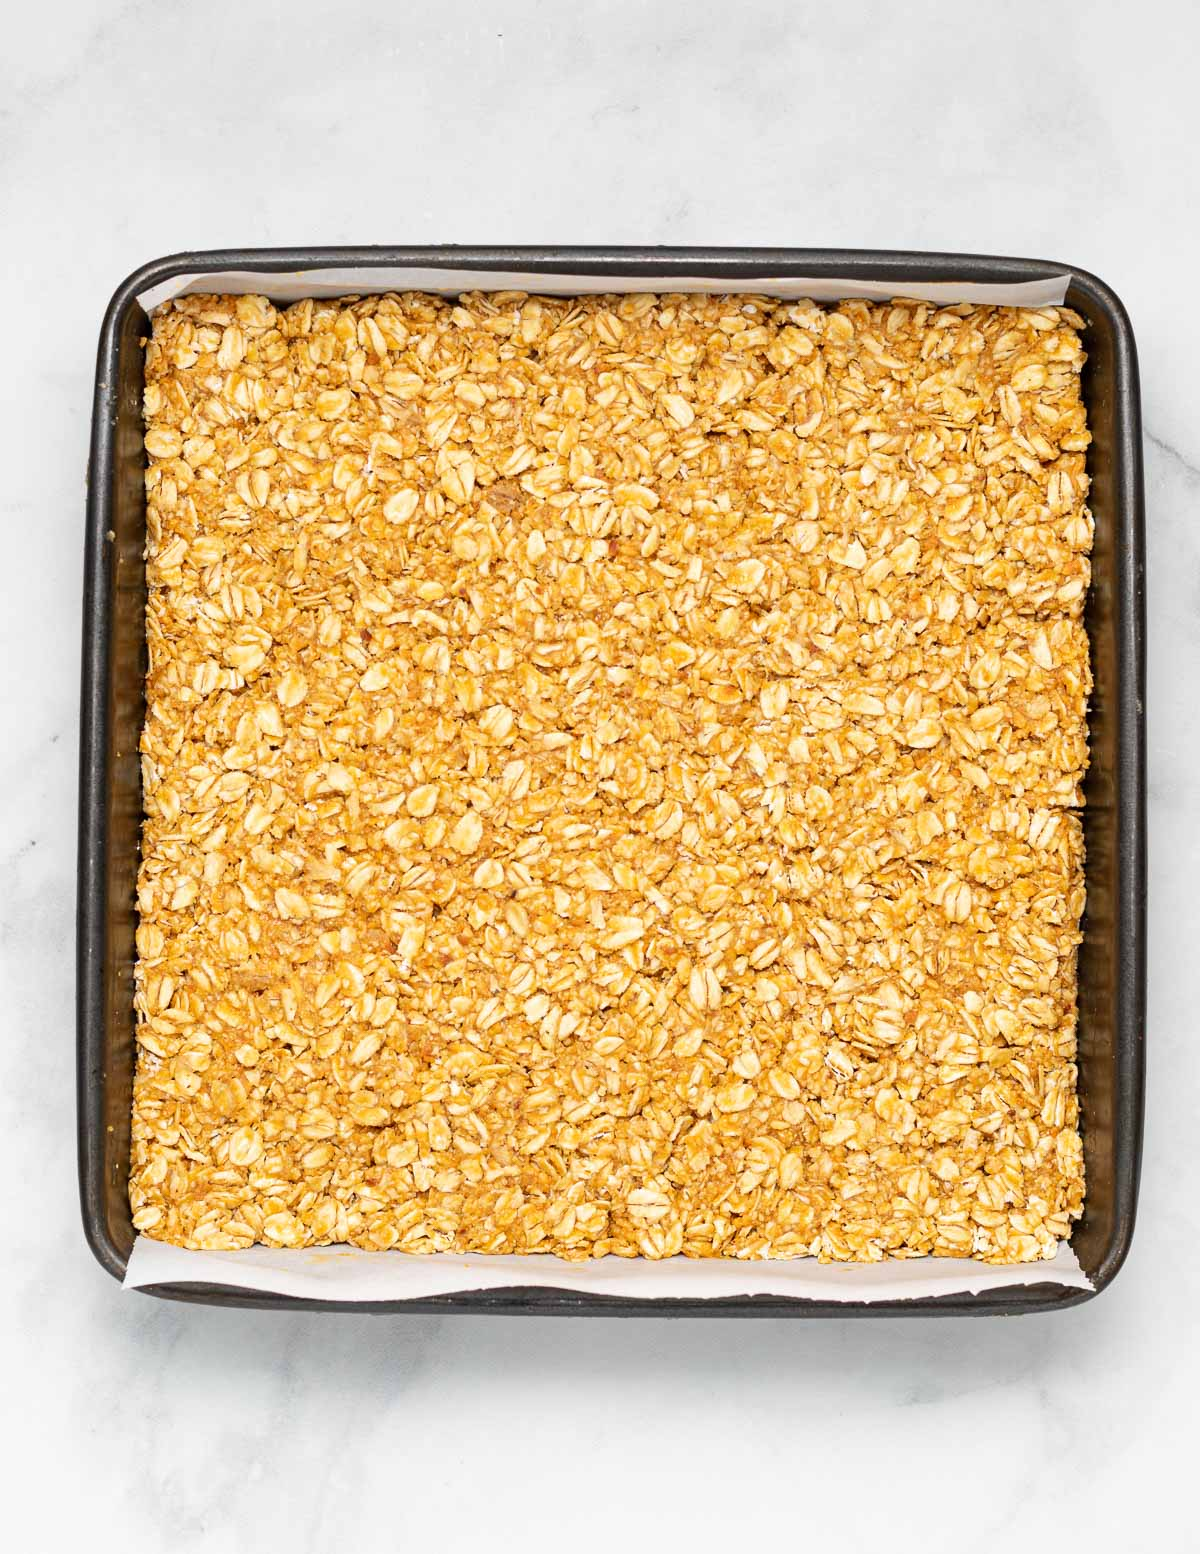 no bake oatmeal peanut butter bar mixture packed in a lined pan